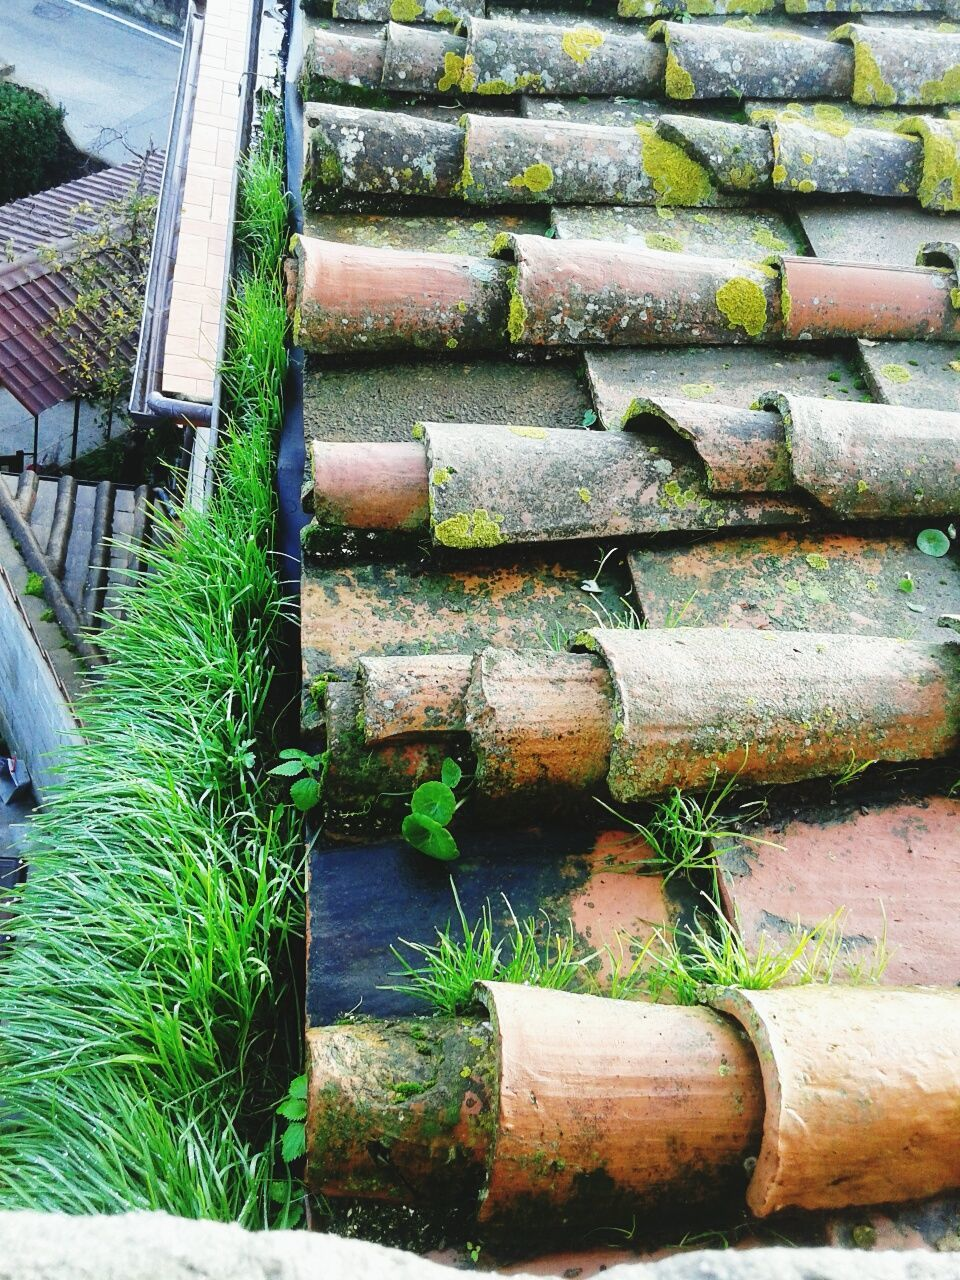 day, outdoors, no people, high angle view, steps, architecture, close-up, nature